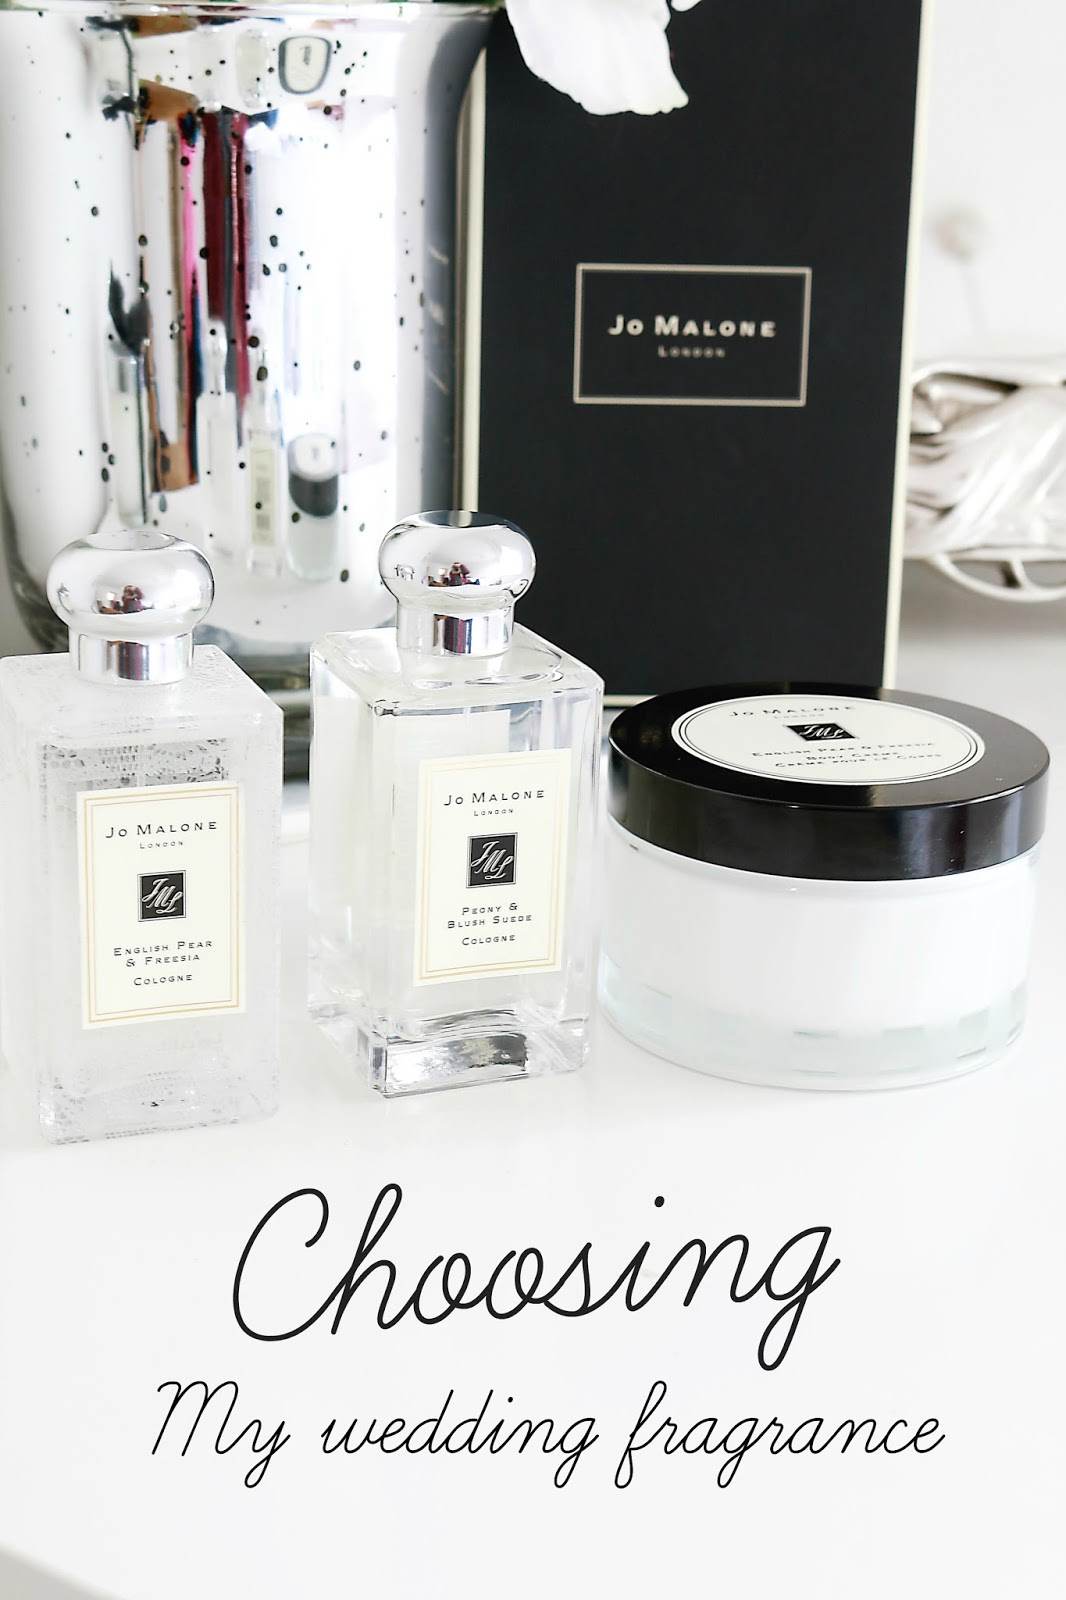 Beauty, Jo Malone, Jo Malone Regent Street, london, shopping, Wedding, bridal, jo malone wedding, jo malone scent, bridal scent,